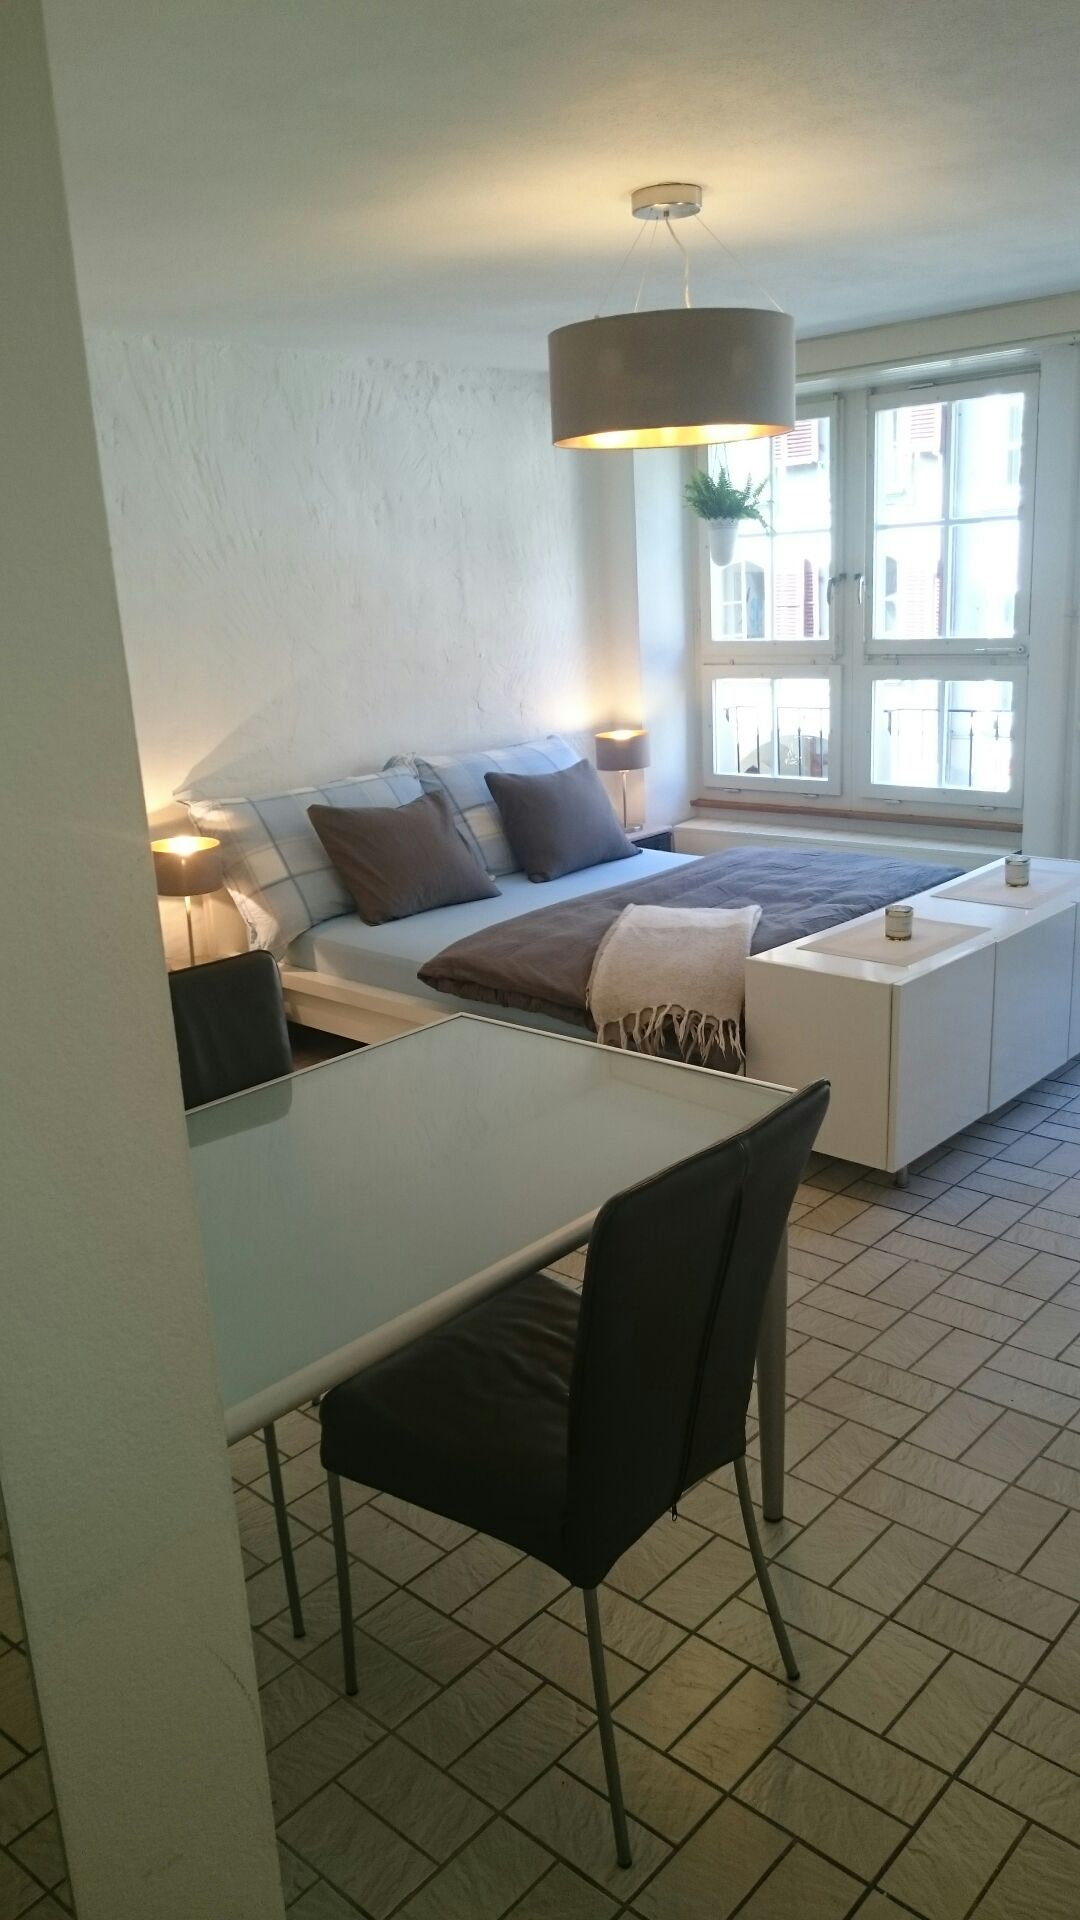 Flat in the heart of berne city